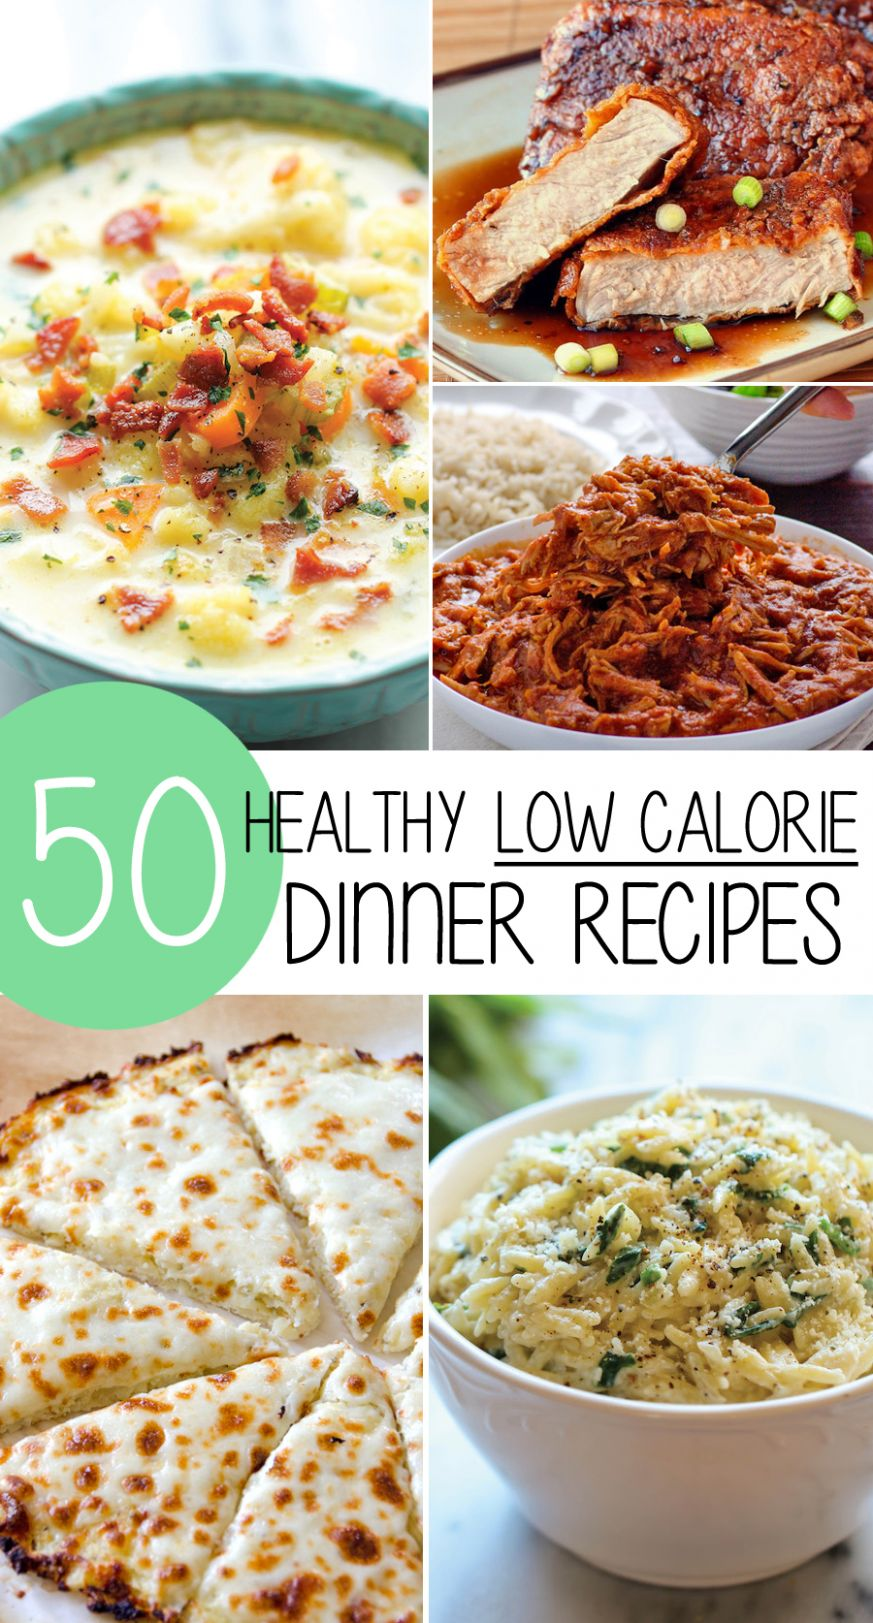 12 Healthy Low Calorie Weight Loss Dinner Recipes! – TrimmedandToned - Healthy Recipes For Weight Loss Low Carb